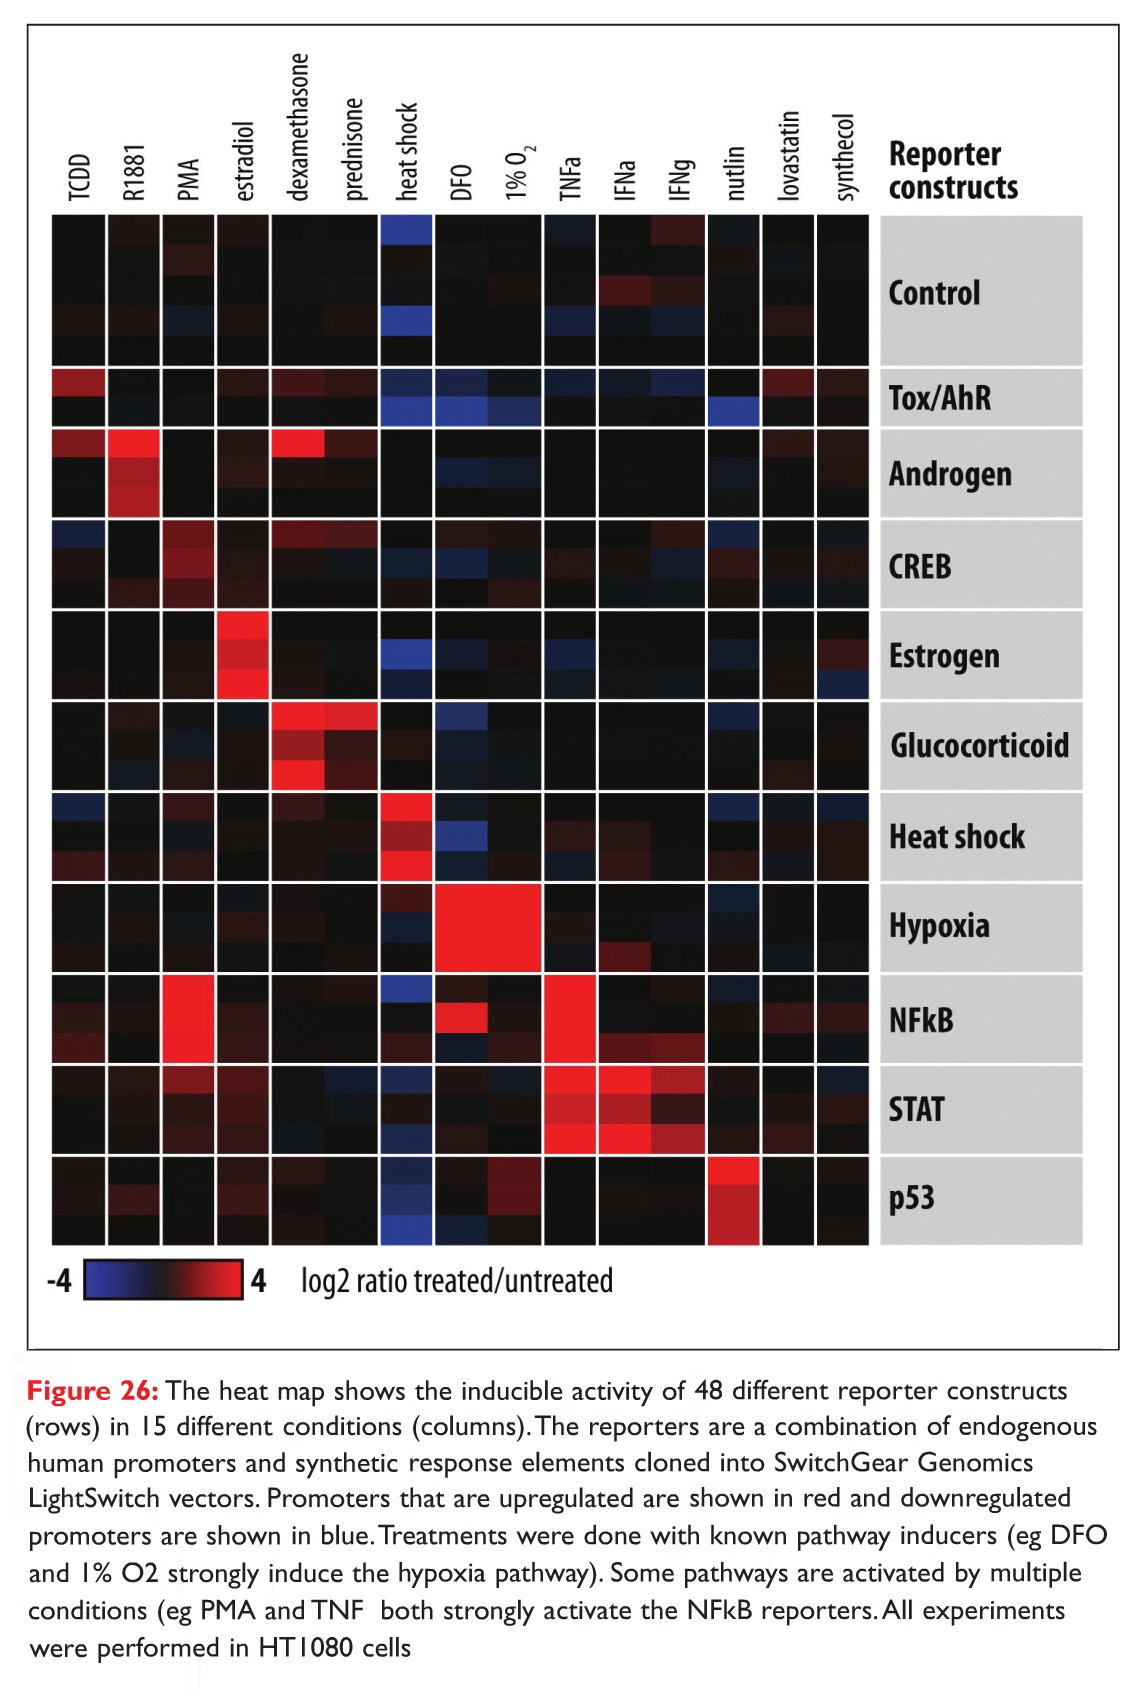 Figure 26 The heat map shows the inducible activity of 48 different reporter constructs in 15 different conditions